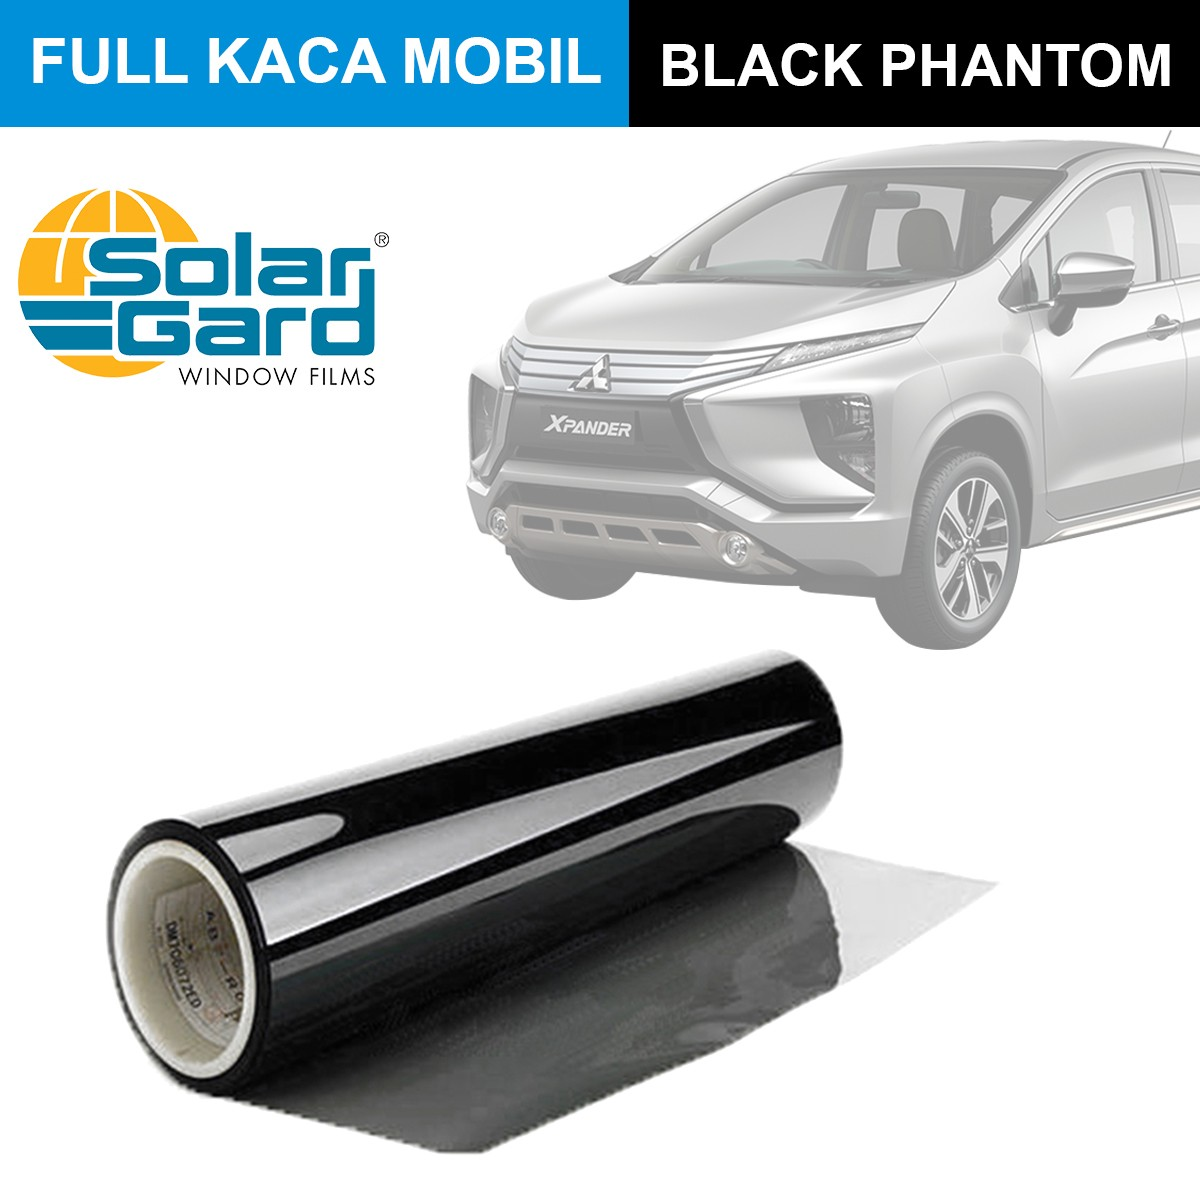 KACA FILM SOLAR GARD BLACK PHANTOM - (MEDIUM CAR) FULL KACA